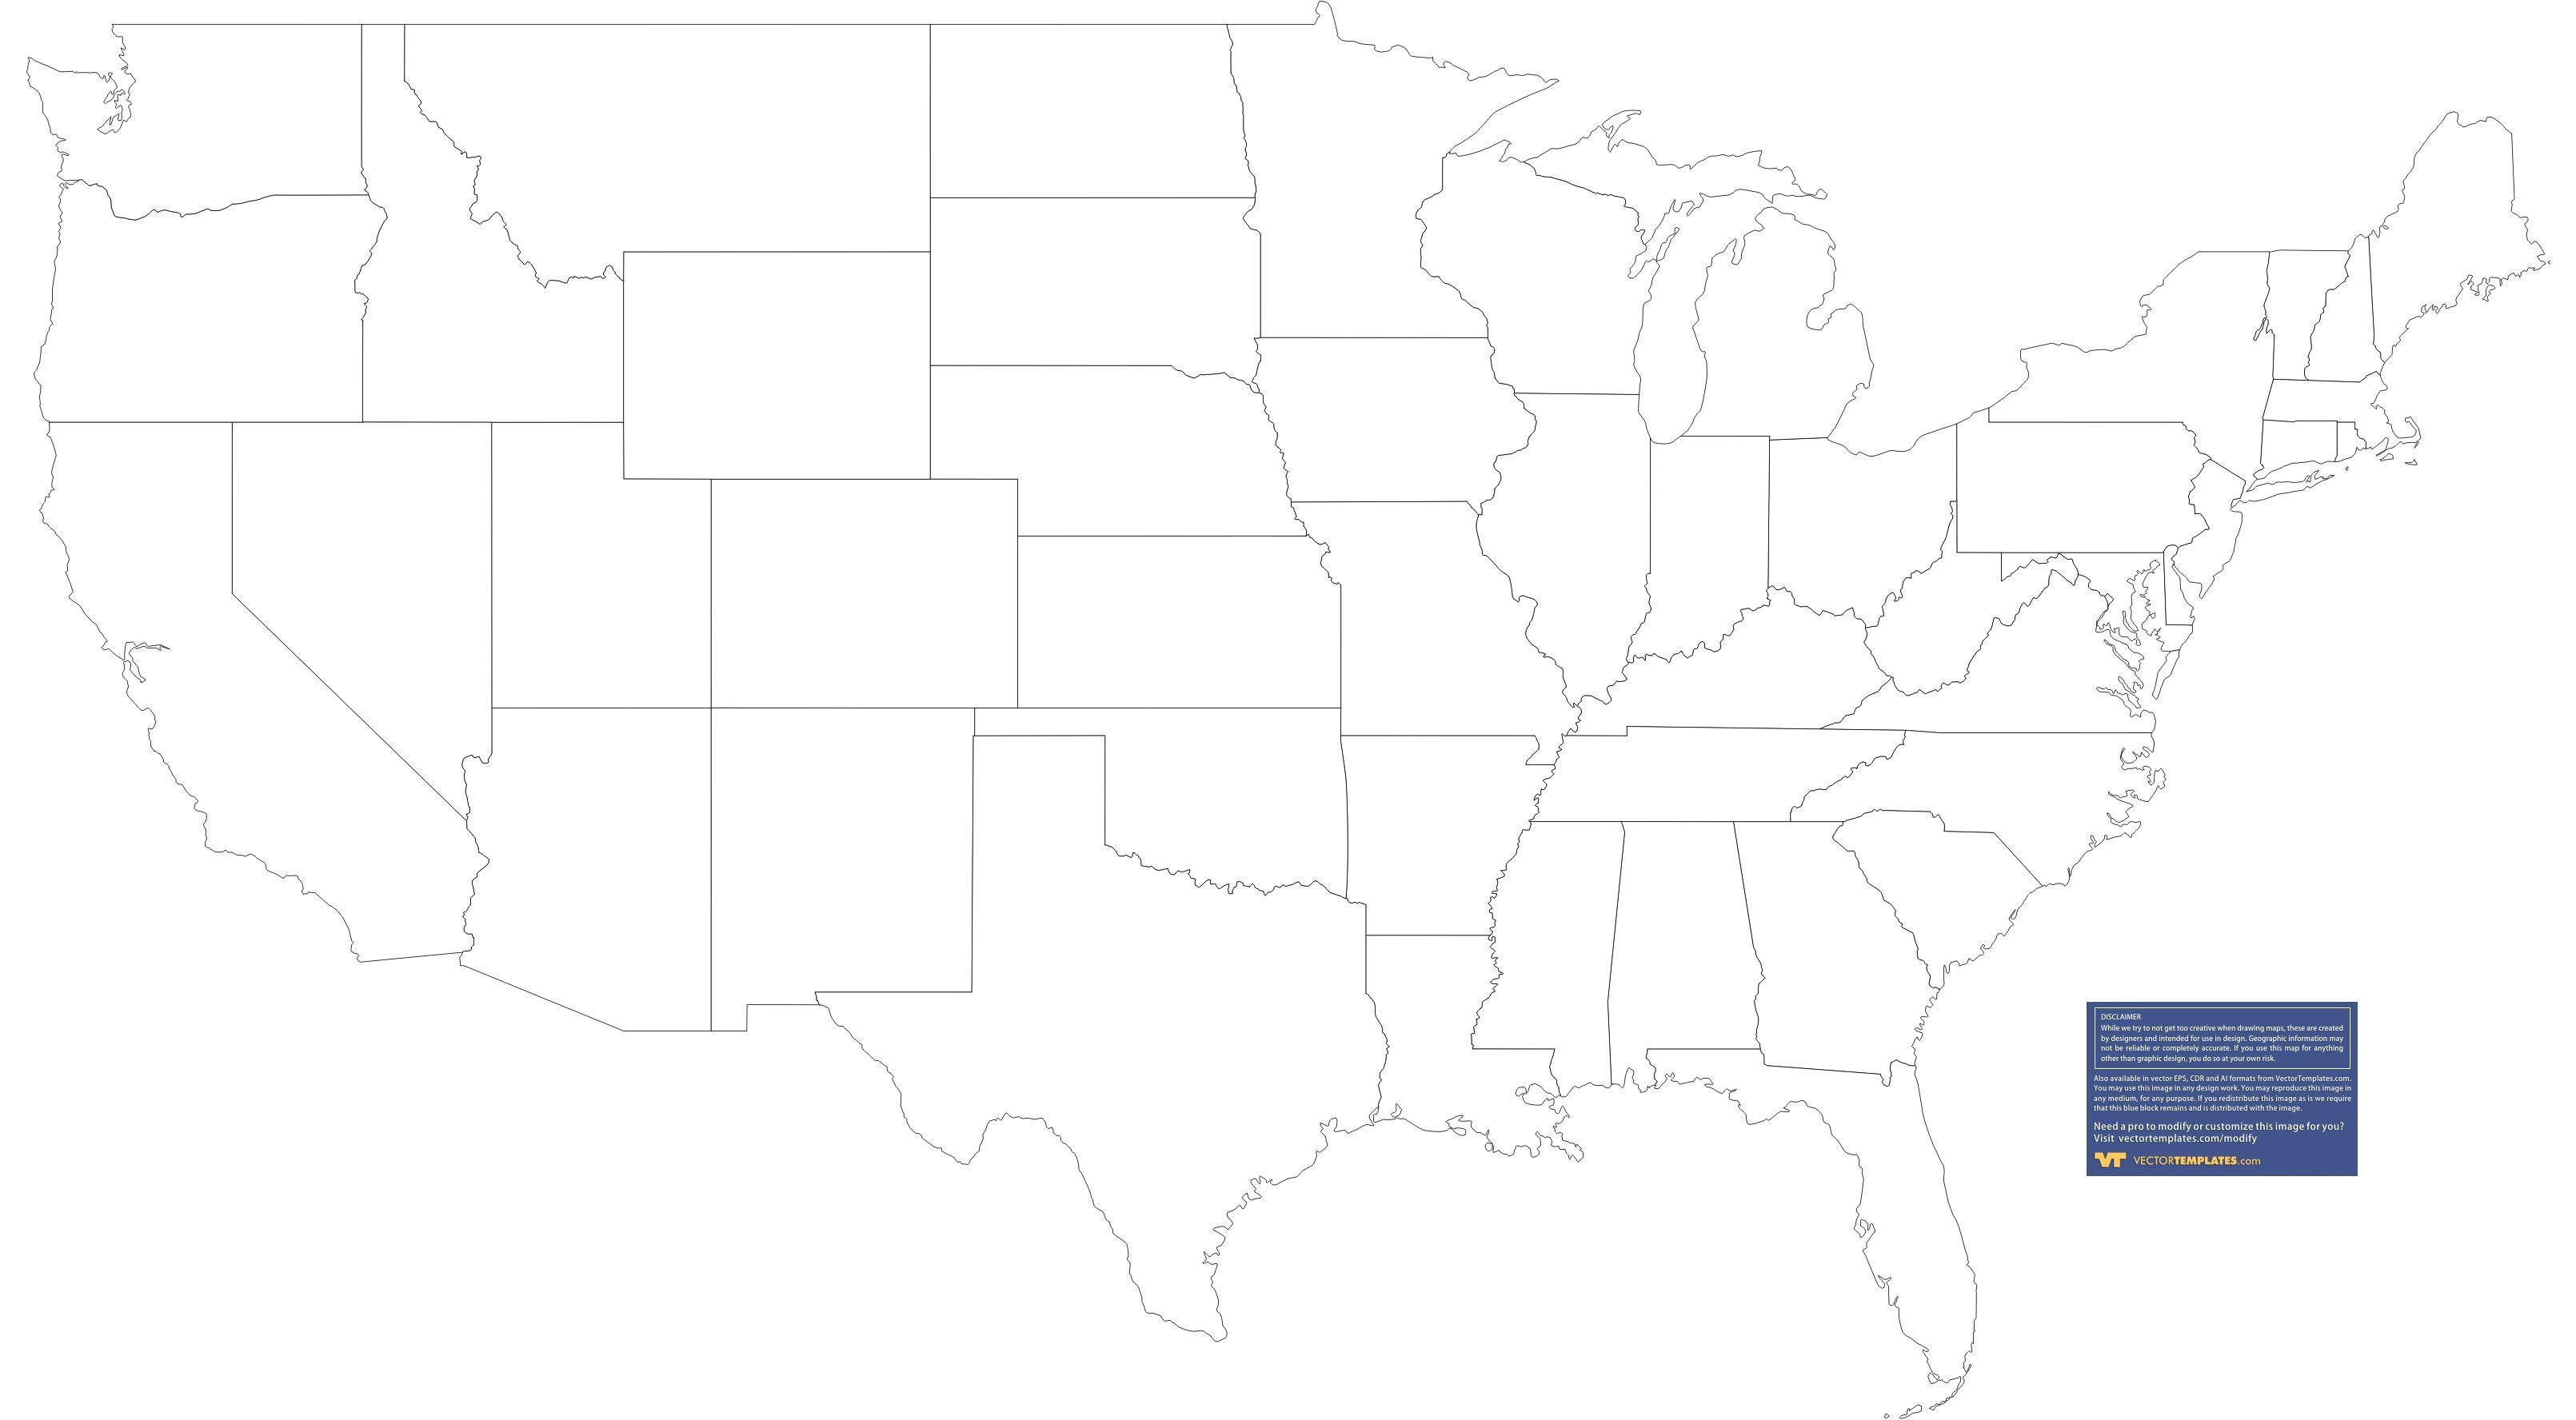 Png Usa Outline Free Usa Outlinepng Transparent Images 4882 Pngio - Map-of-the-us-outline